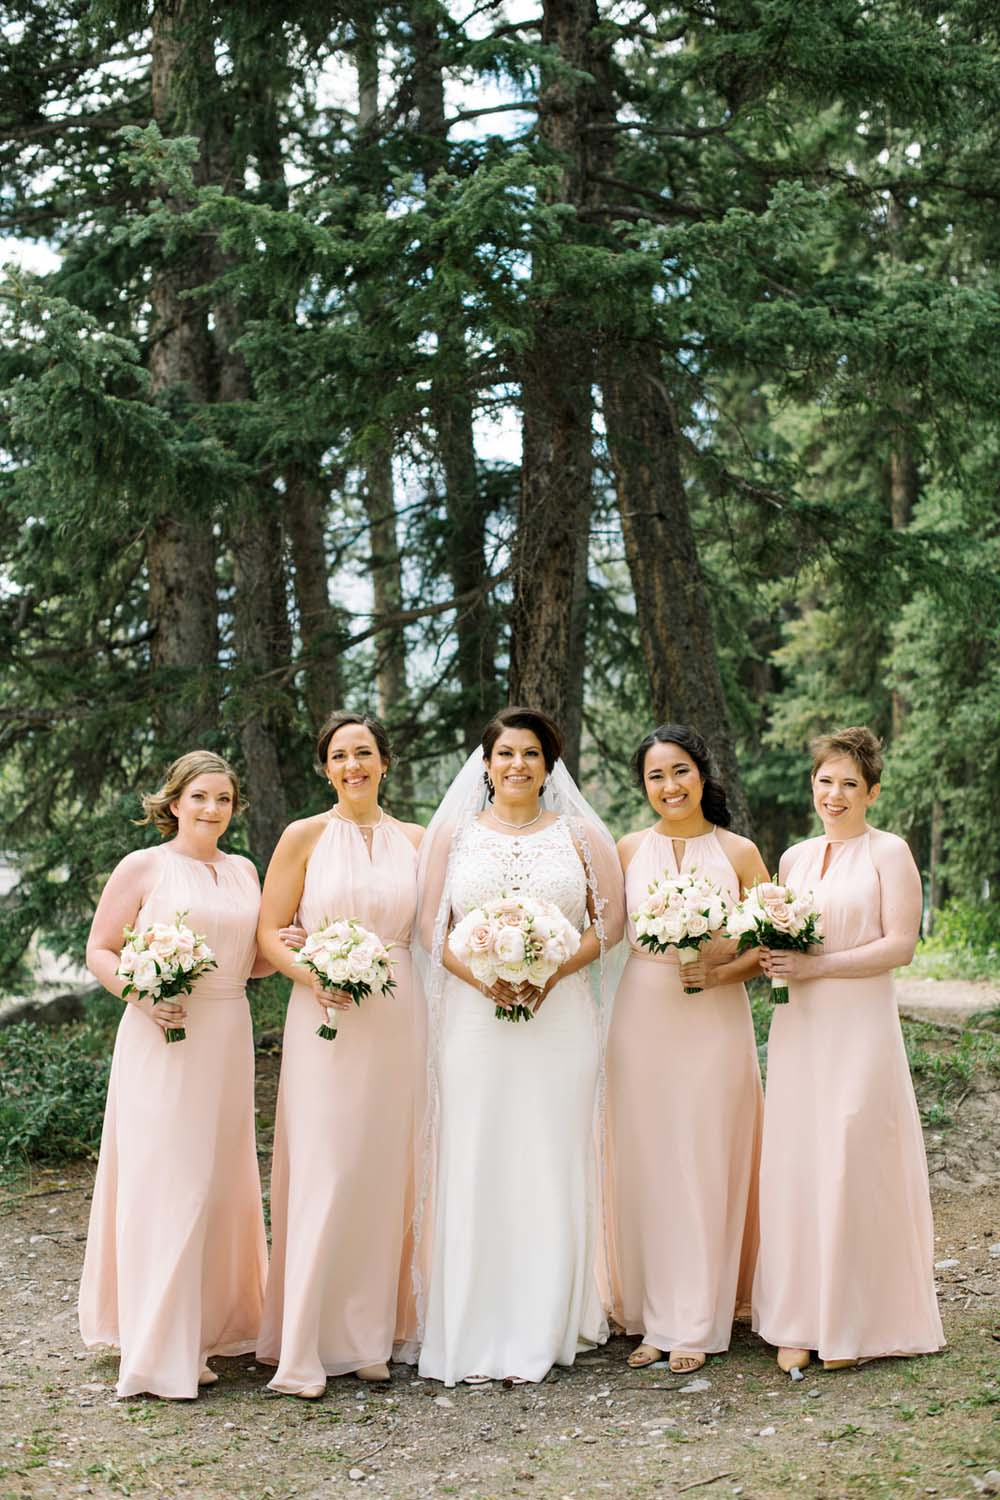 A Regal Fairytale Wedding in Banff, Alberta - Bridesmaids